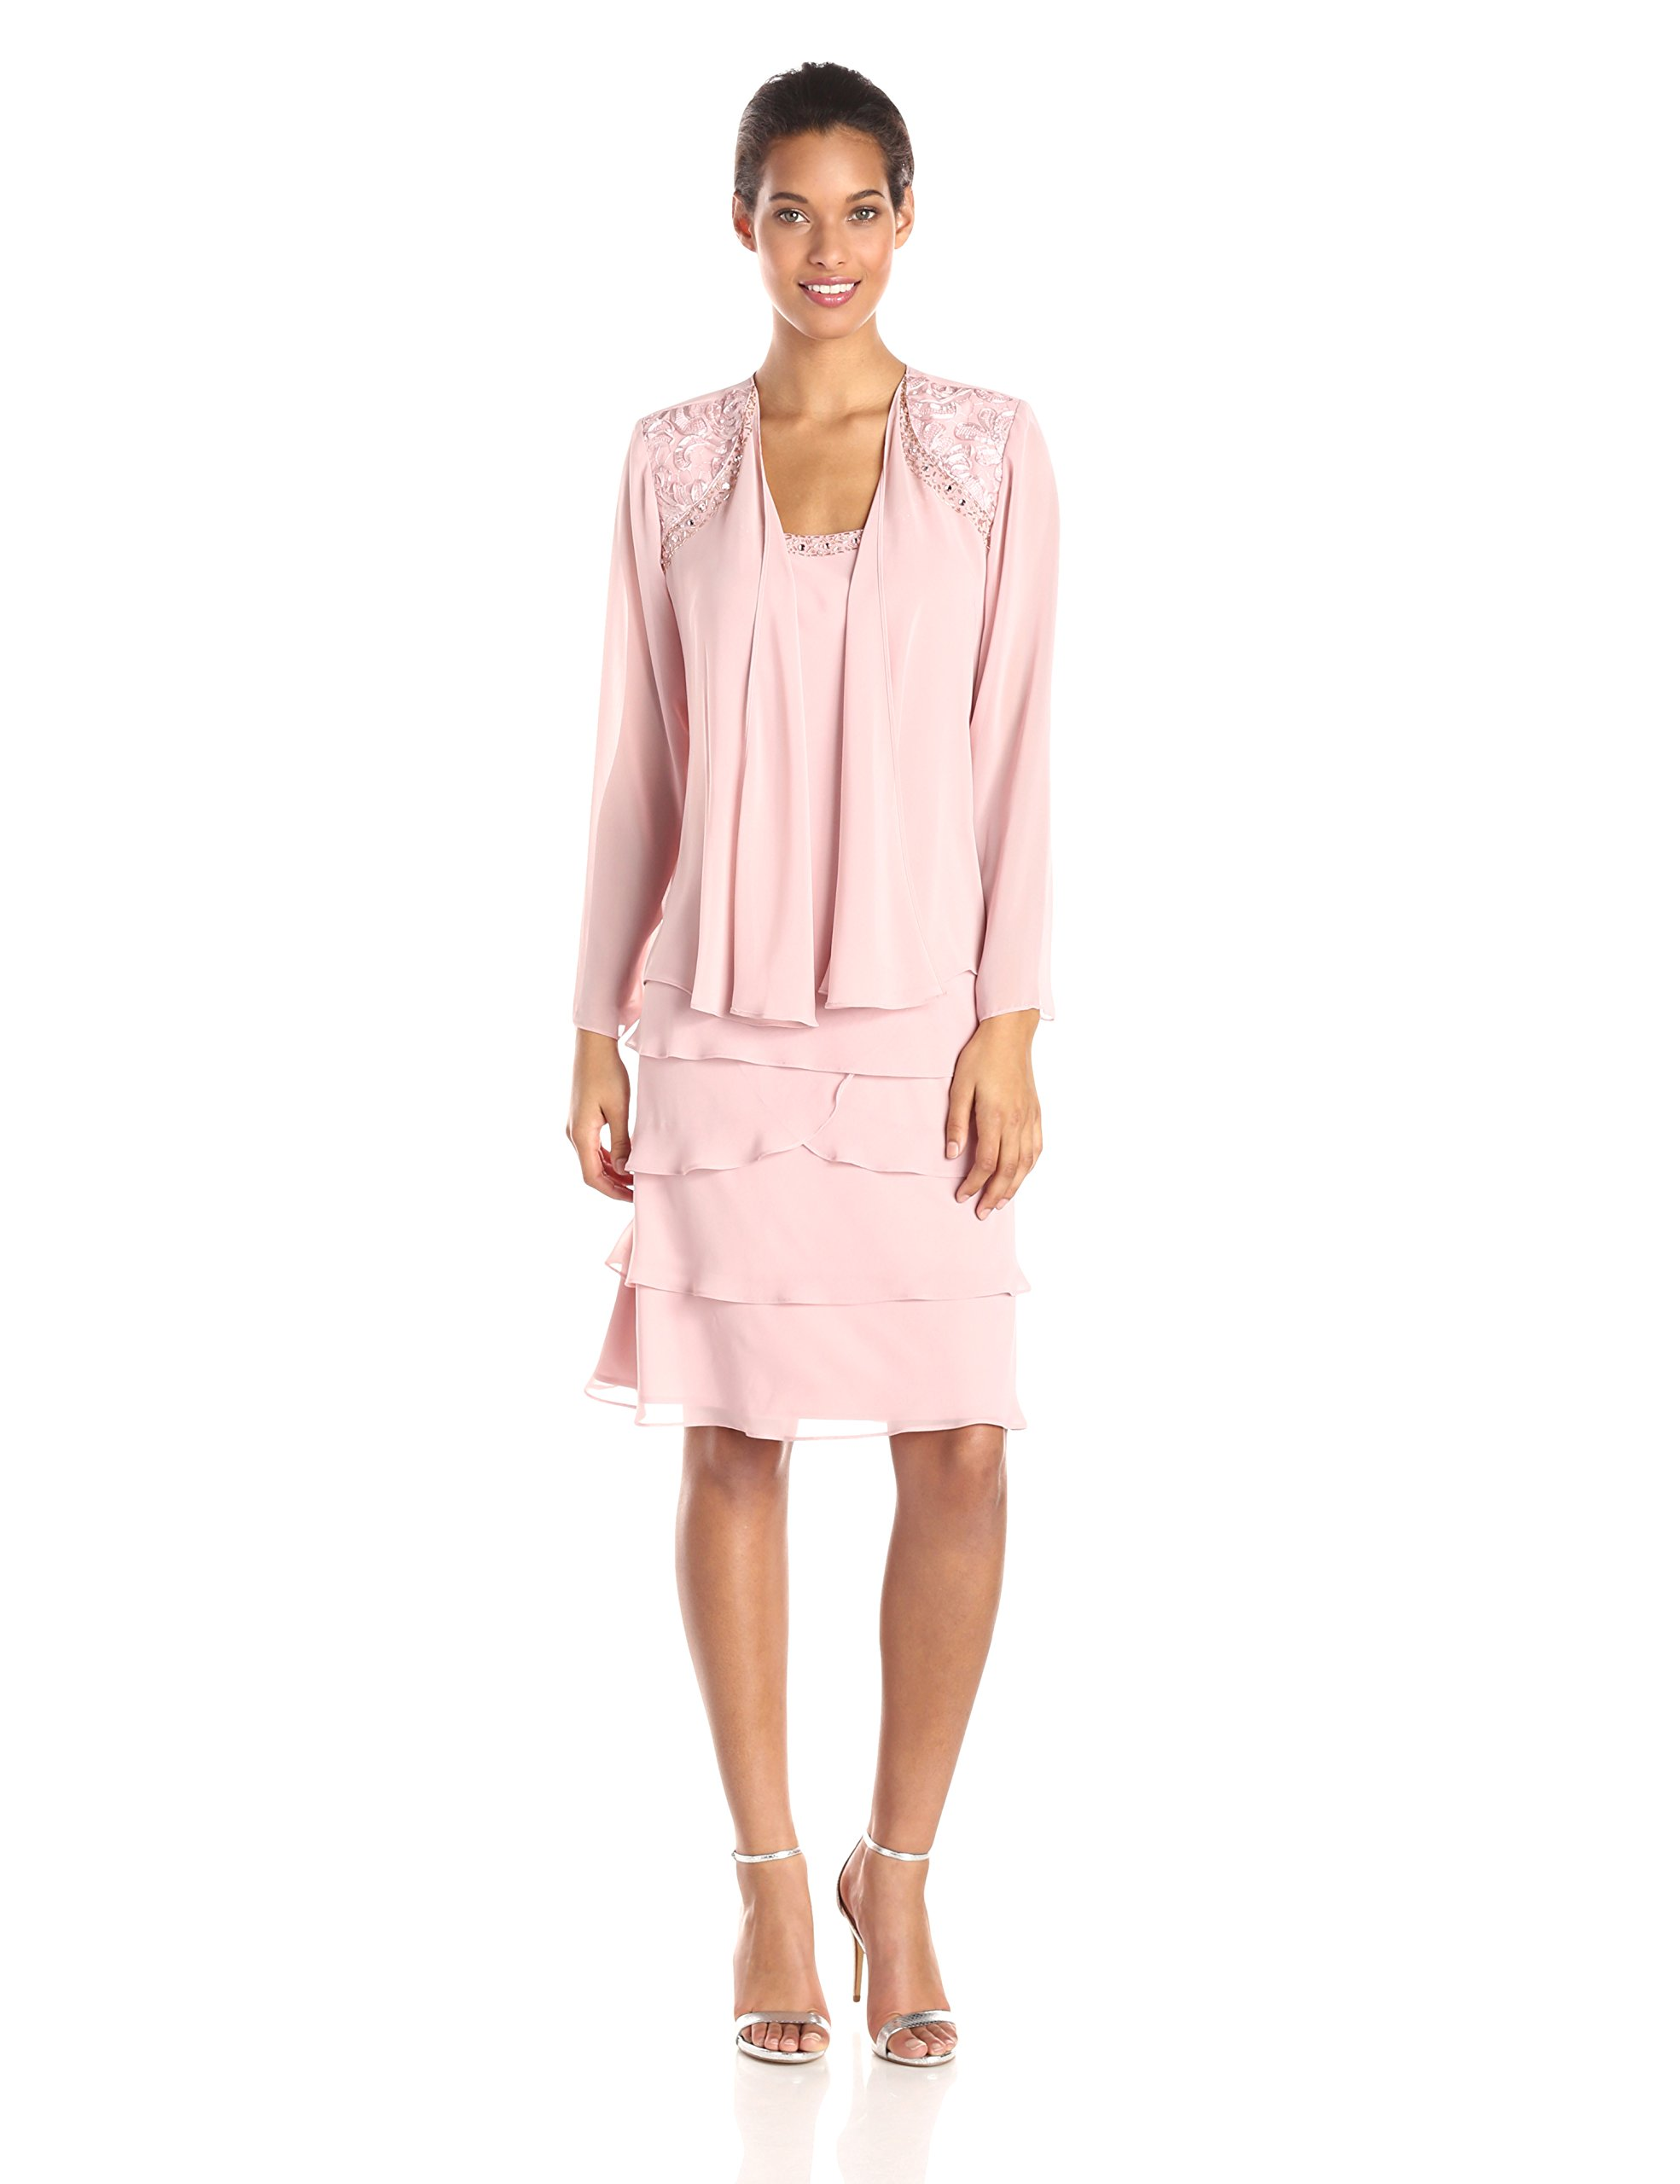 Mother Of The Bride Dresses - Women's Embellished Tiered Jacket Dress (Petite And Regular)